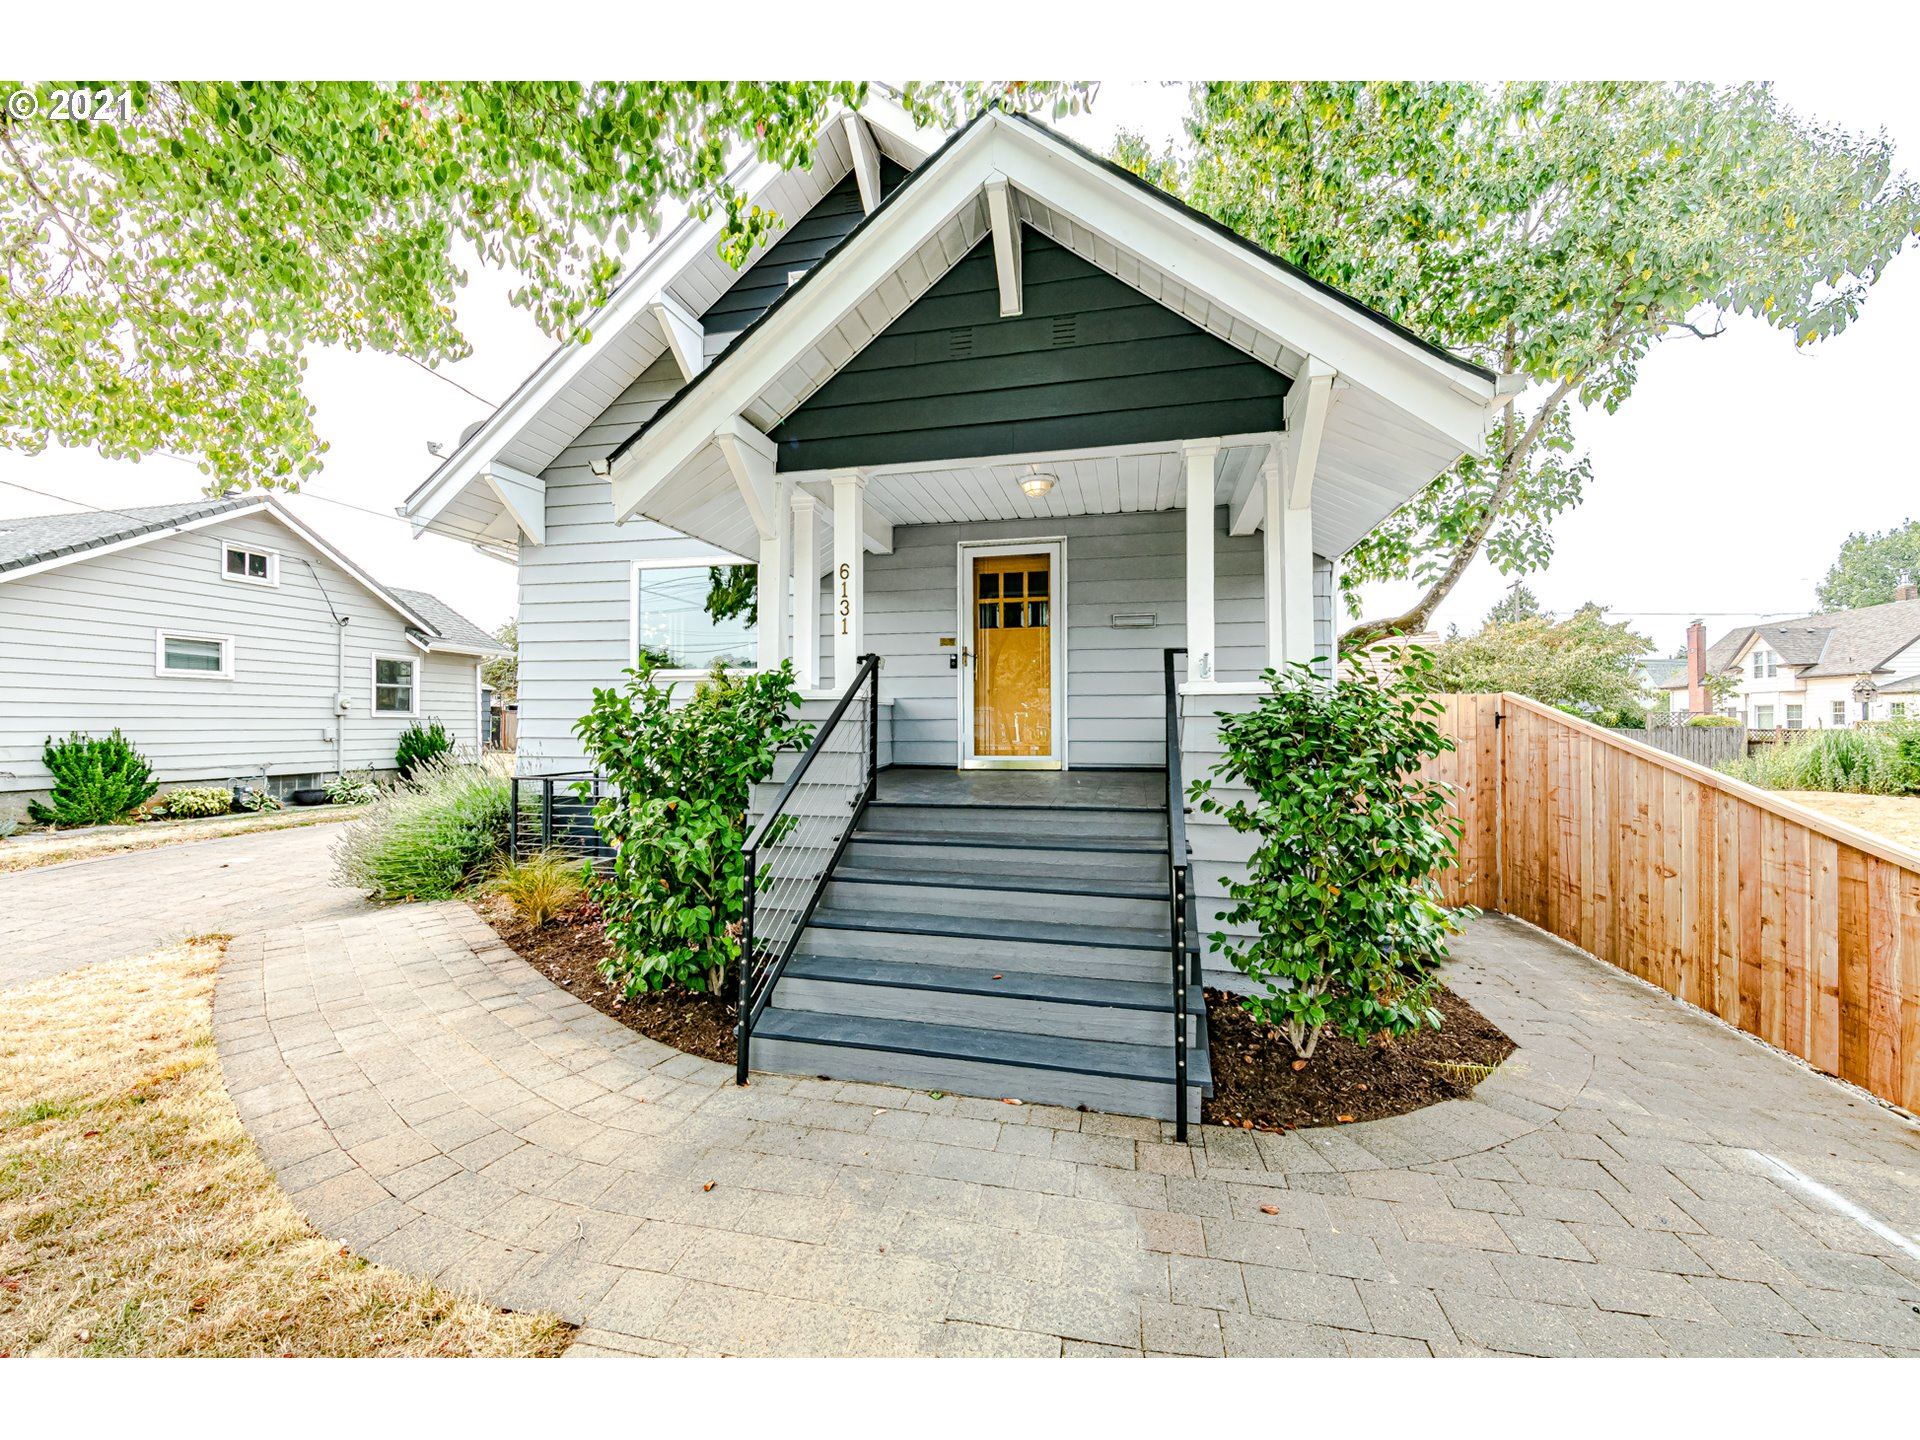 6131 N CAMPBELL AVE, Portland, OR 97217 - MLS#: 21058810